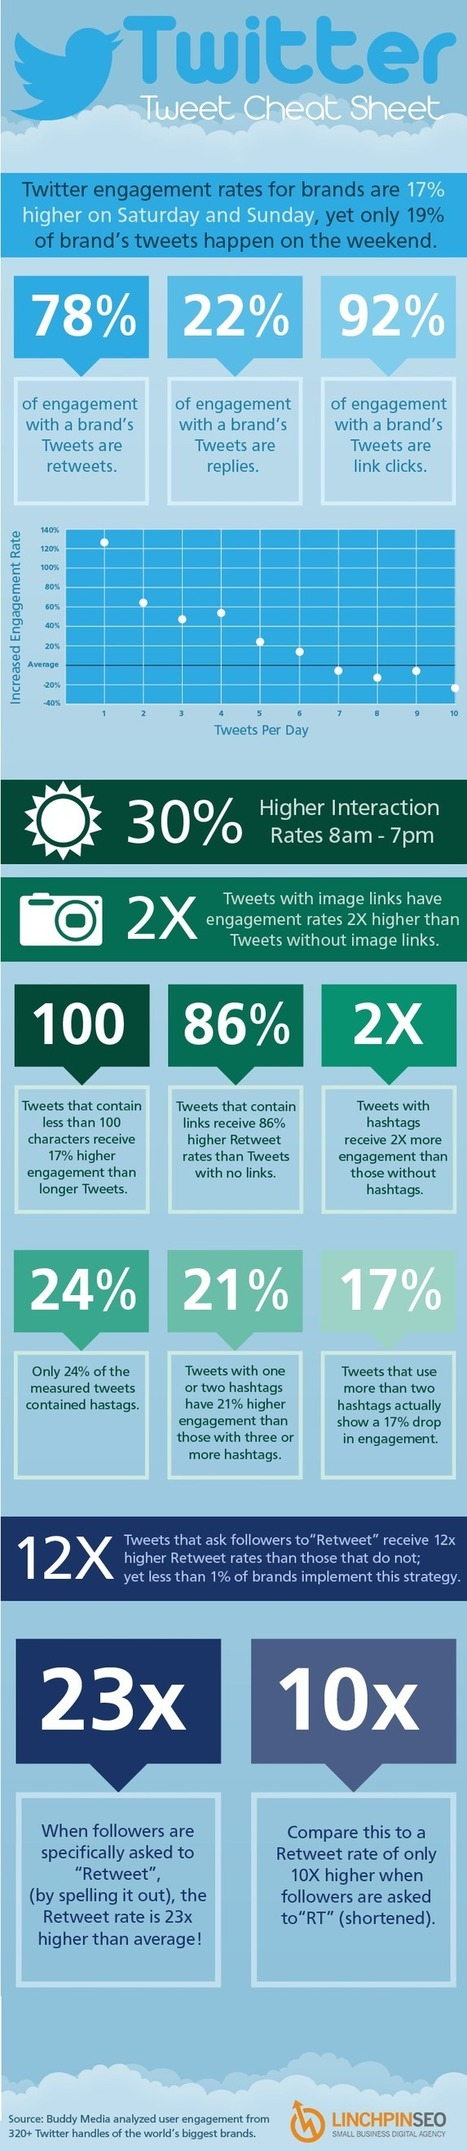 Twitter Cheat Sheet: How to Increase Your Engagement | Xposed | Scoop.it